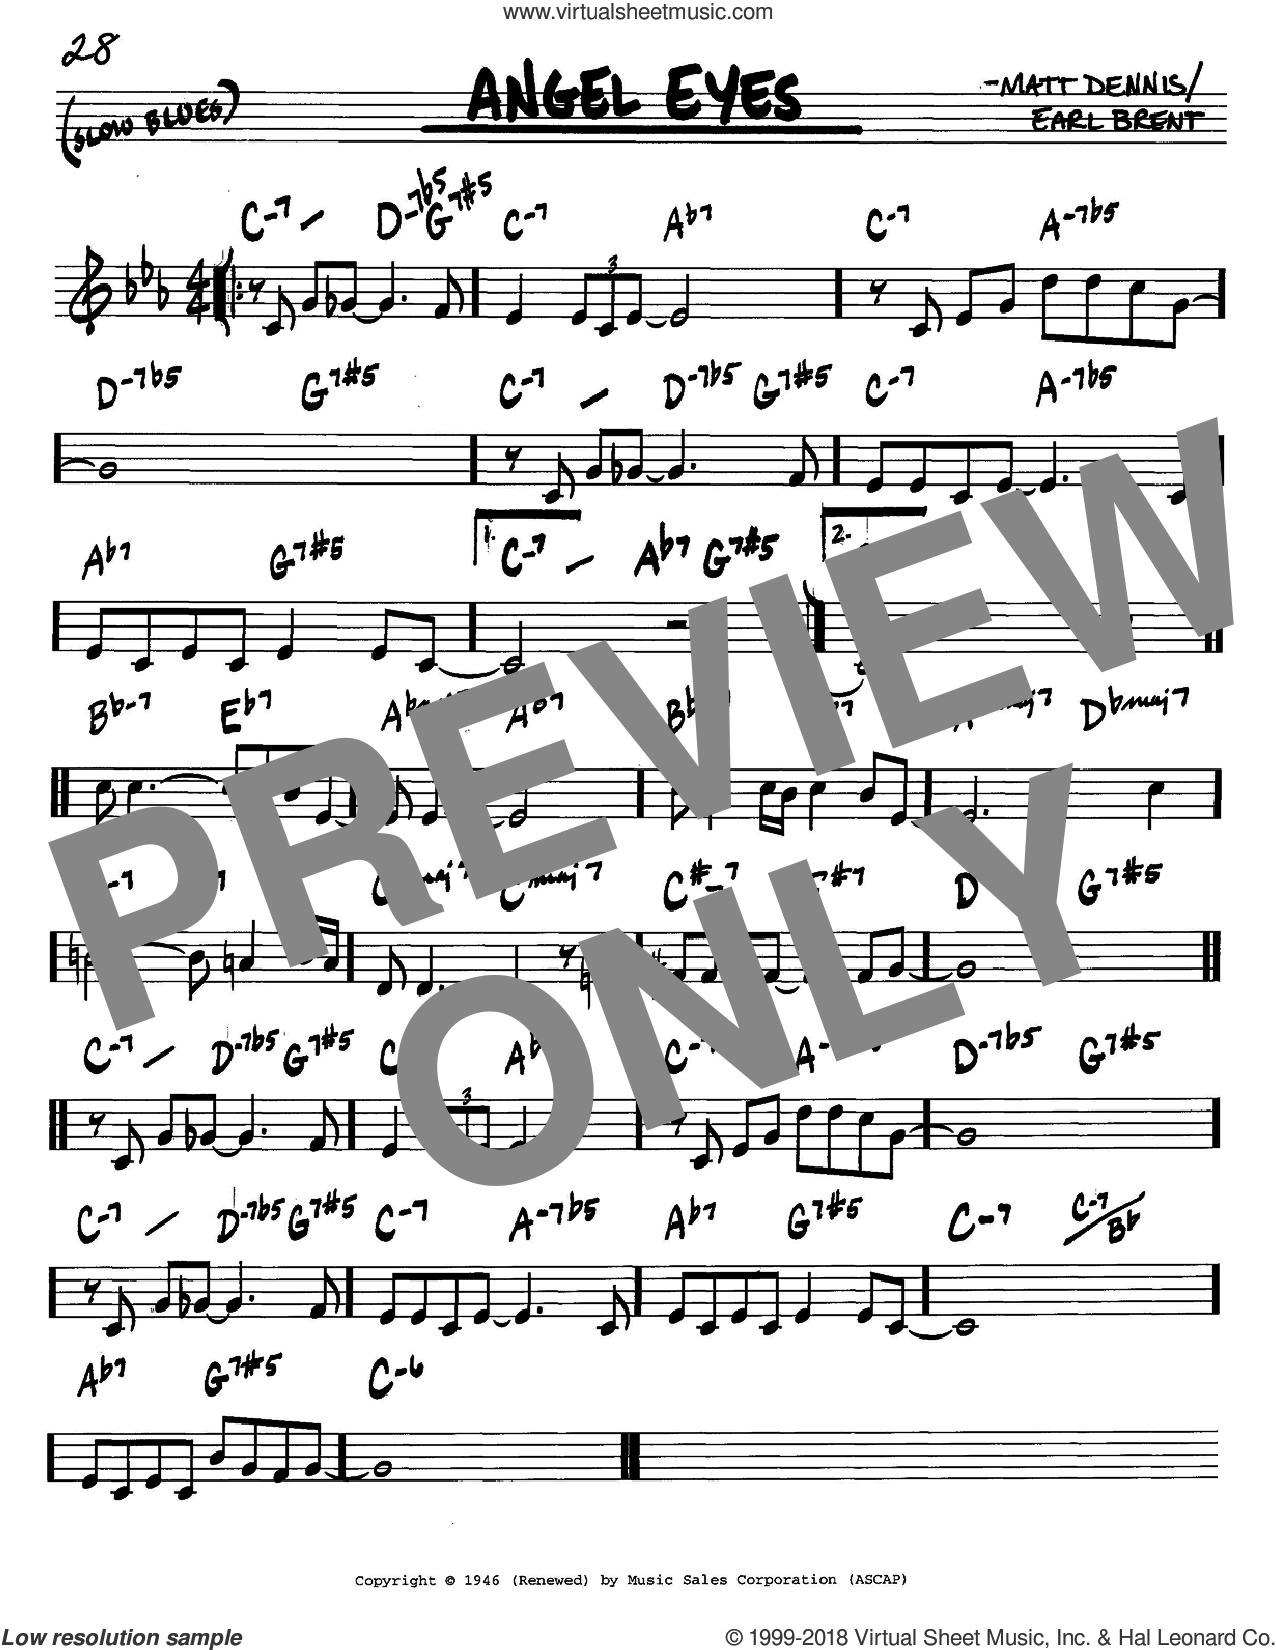 Angel Eyes sheet music for voice and other instruments (C) by Matt Dennis